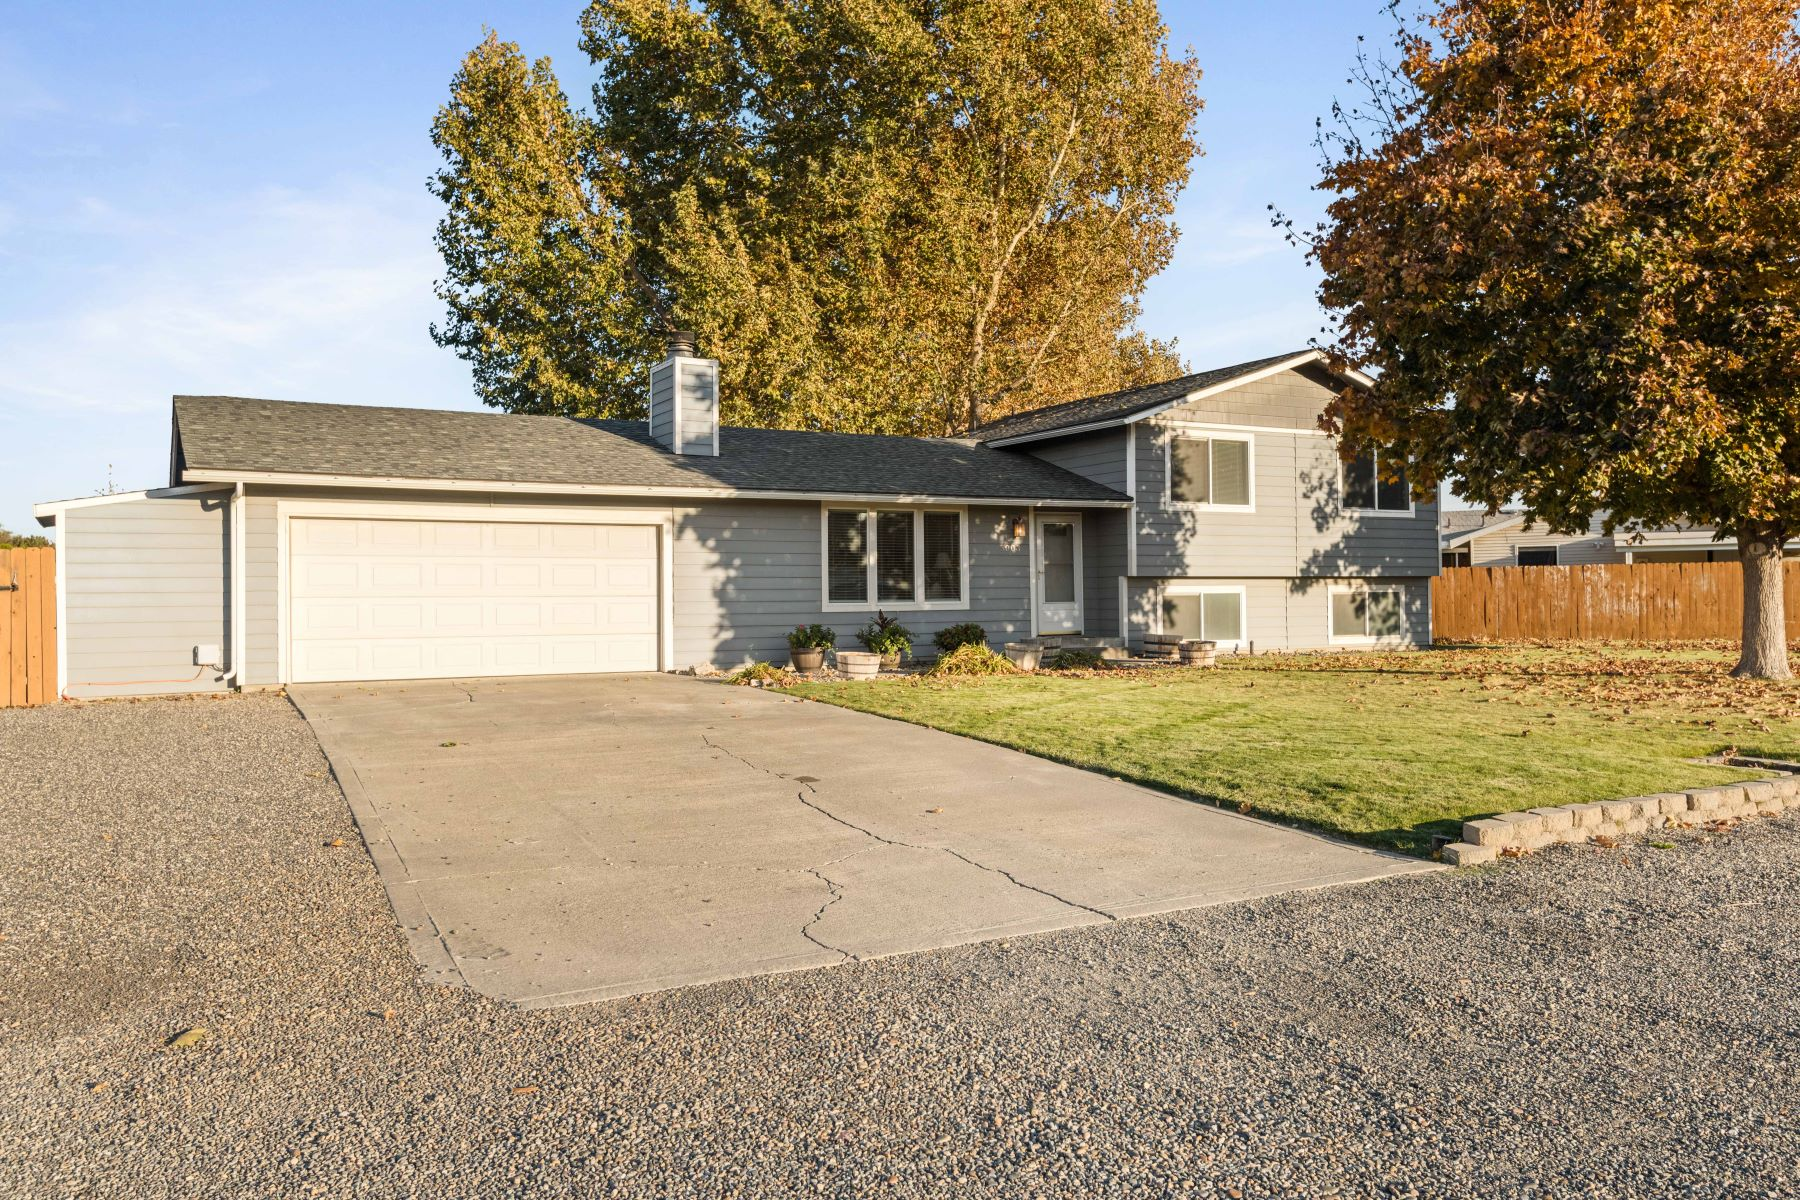 Single Family Homes for Sale at Location! Location! Location! 5003 Fruitland Street Kennewick, Washington 99337 United States